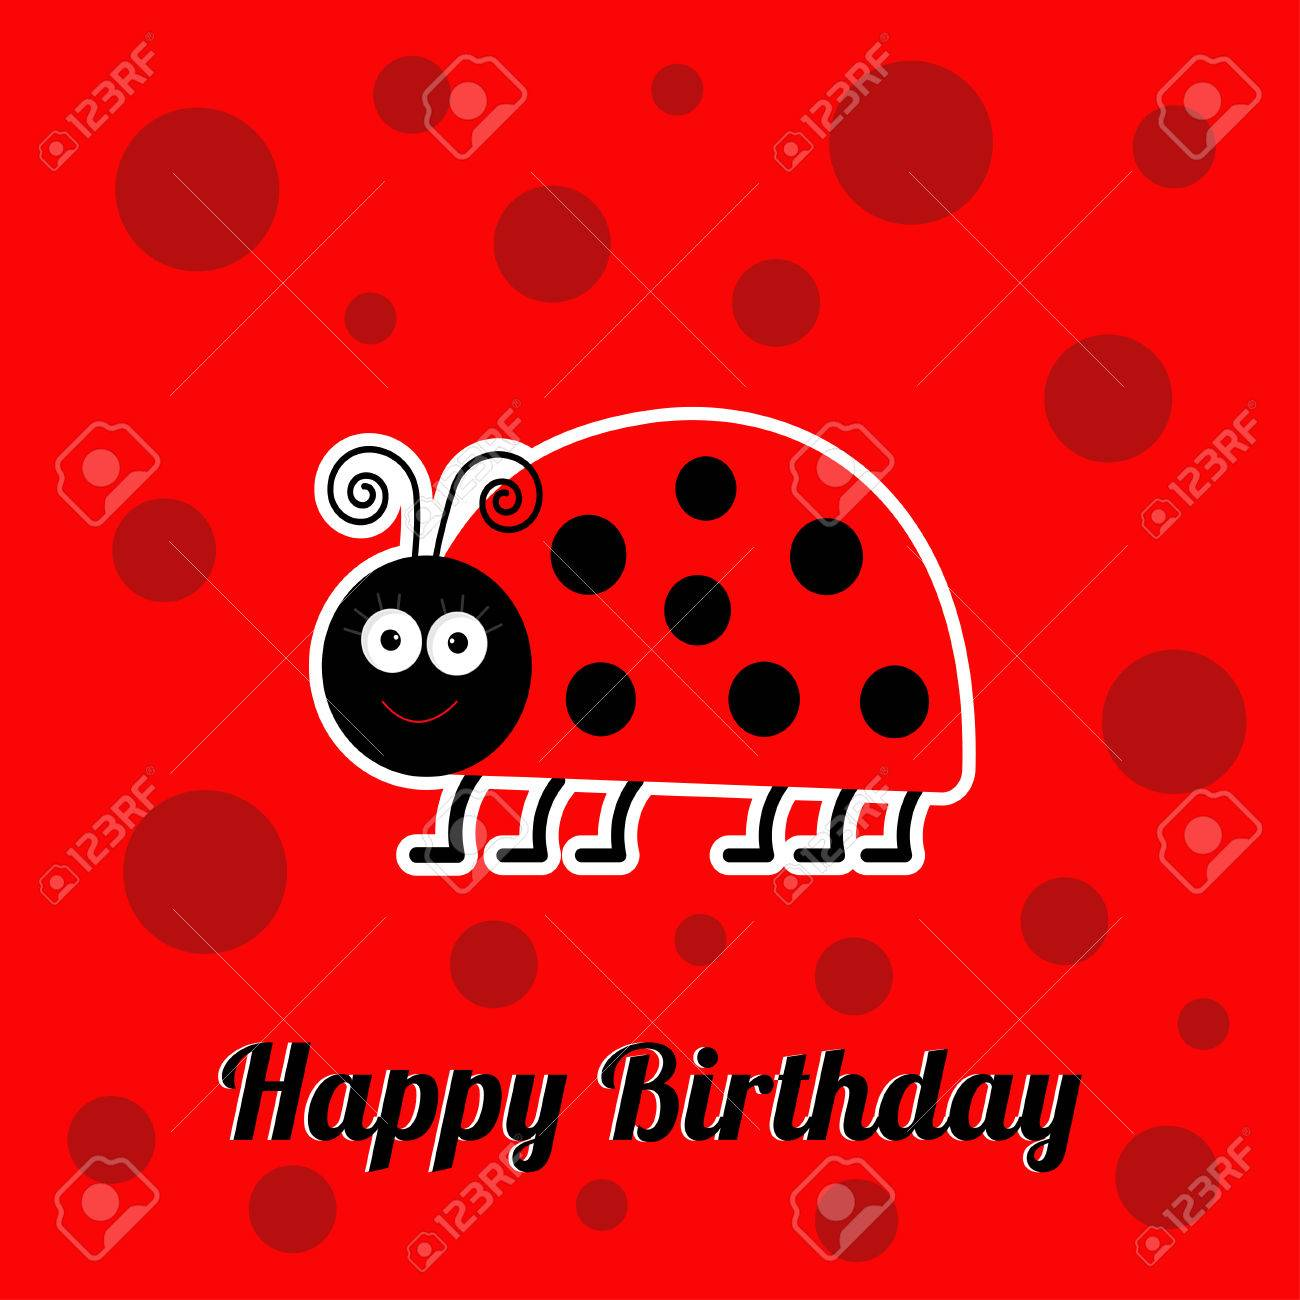 Happy birthday card with cute lady bug ladybird insect baby happy birthday card with cute lady bug ladybird insect baby background flat design stock vector bookmarktalkfo Image collections